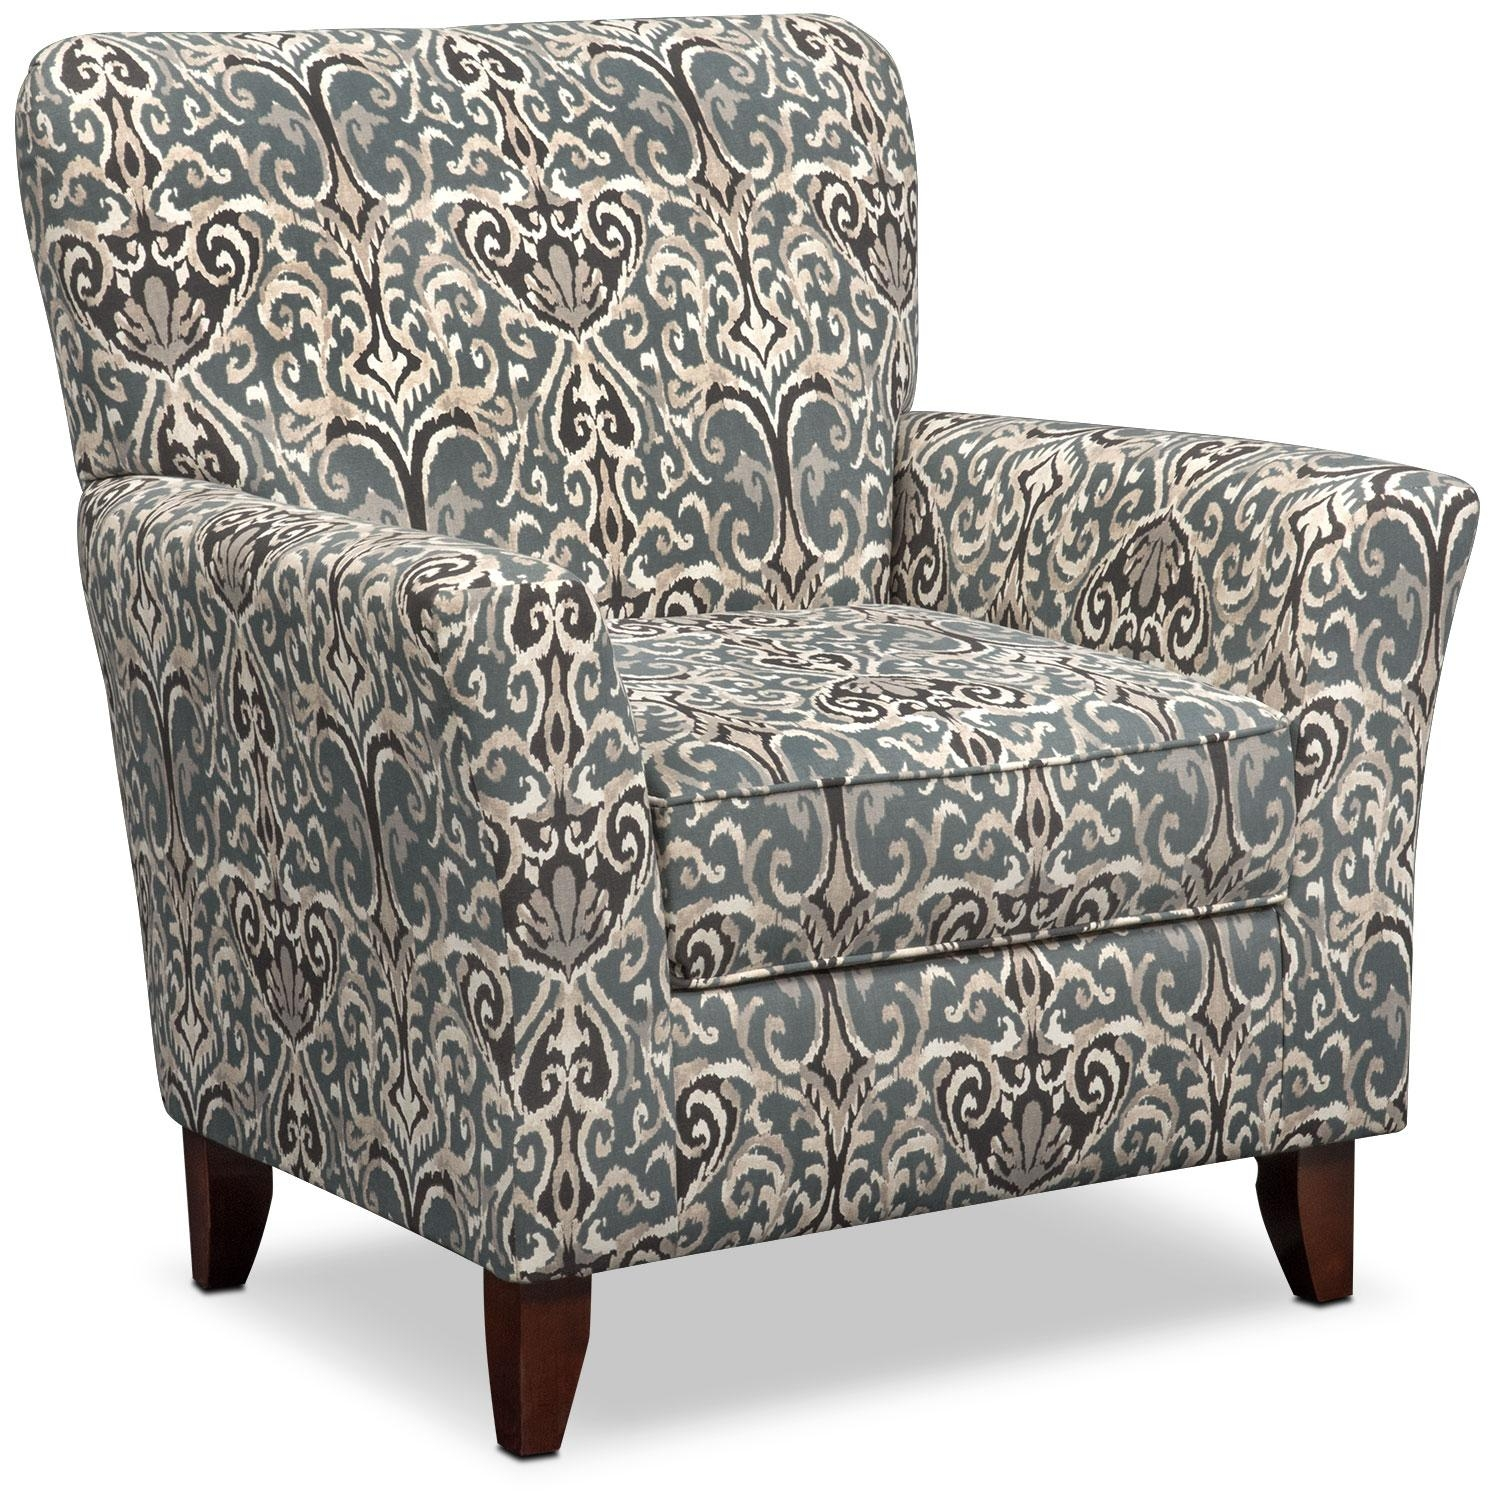 Carla Sofa And Accent Chair Set – Gray | Value City Furniture Throughout Sofa And Accent Chair Set (View 17 of 20)